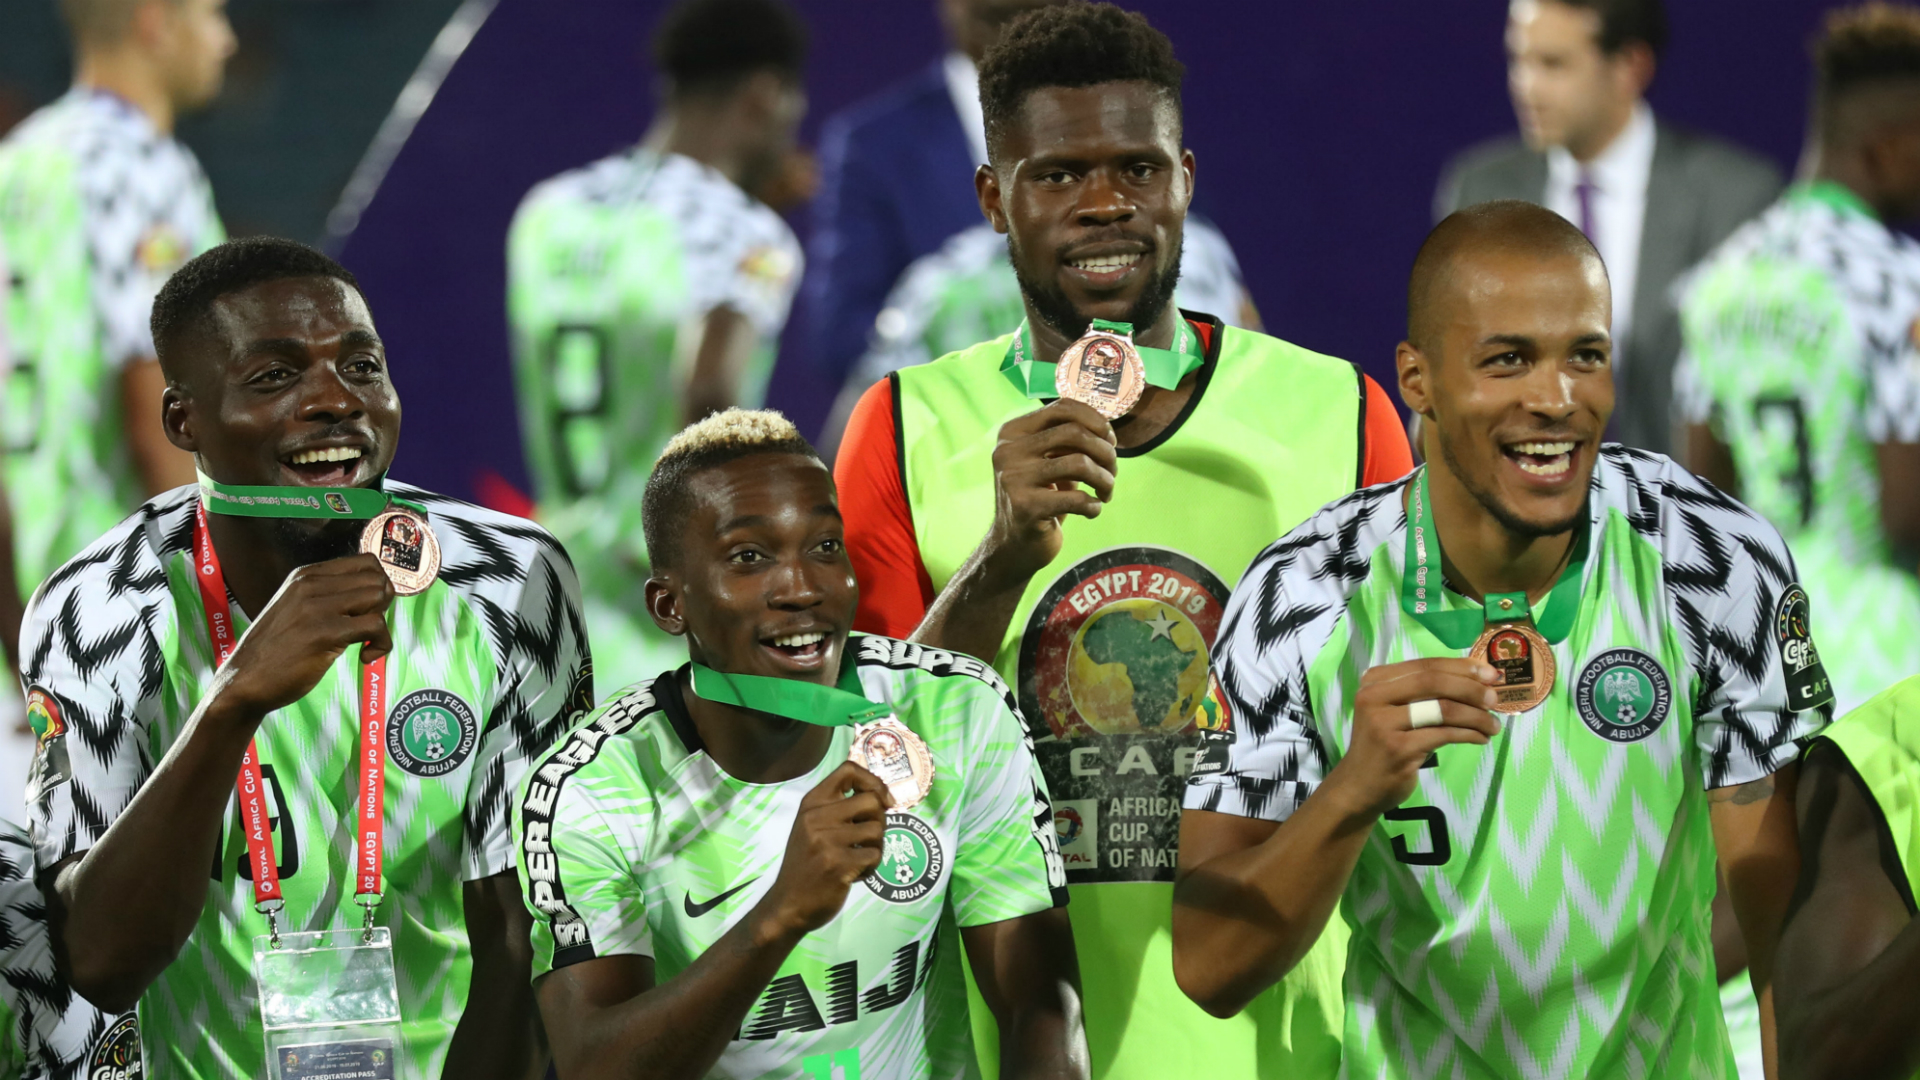 'Nigeria not number one in Africa' – Rohr on why Afcon is difficult to win